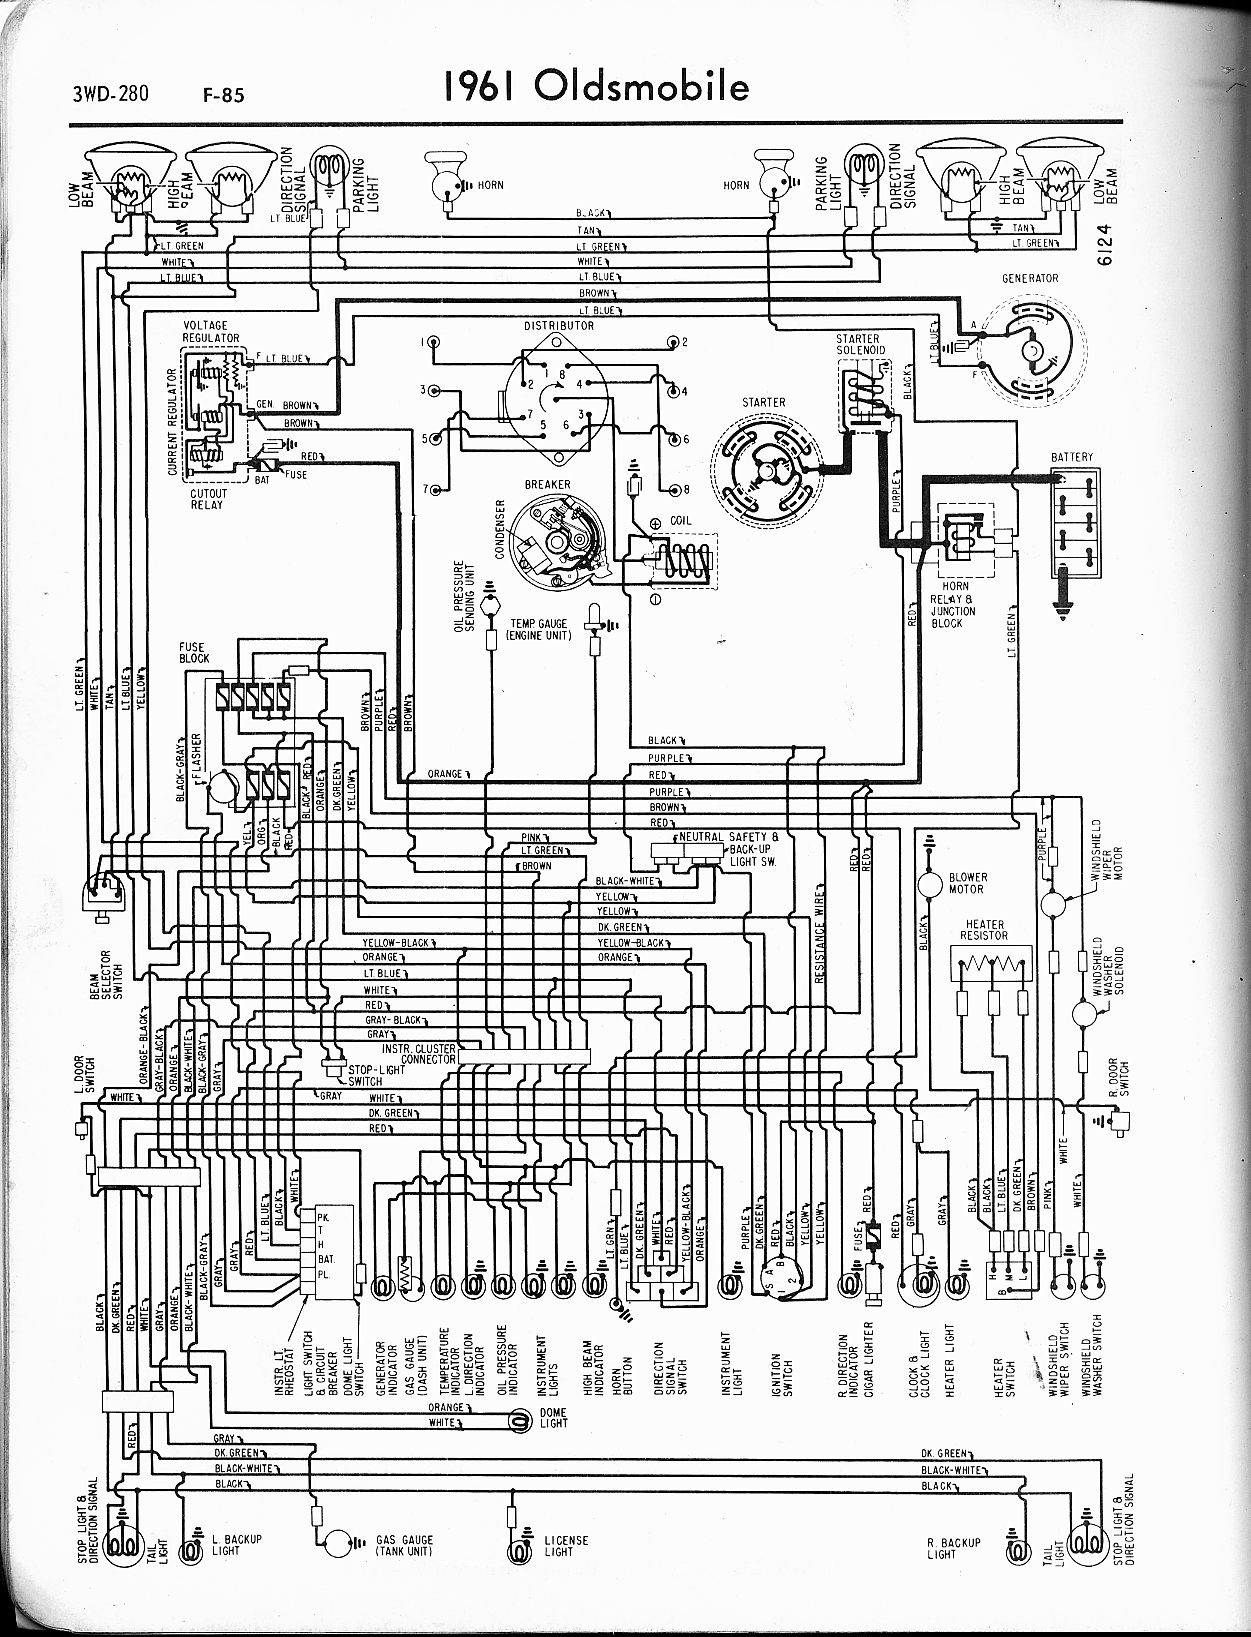 1970 Plymouth Wiring Diagram Bgmt Data Satellite Oldsmobile Diagrams The Old Car Manual Project Engine